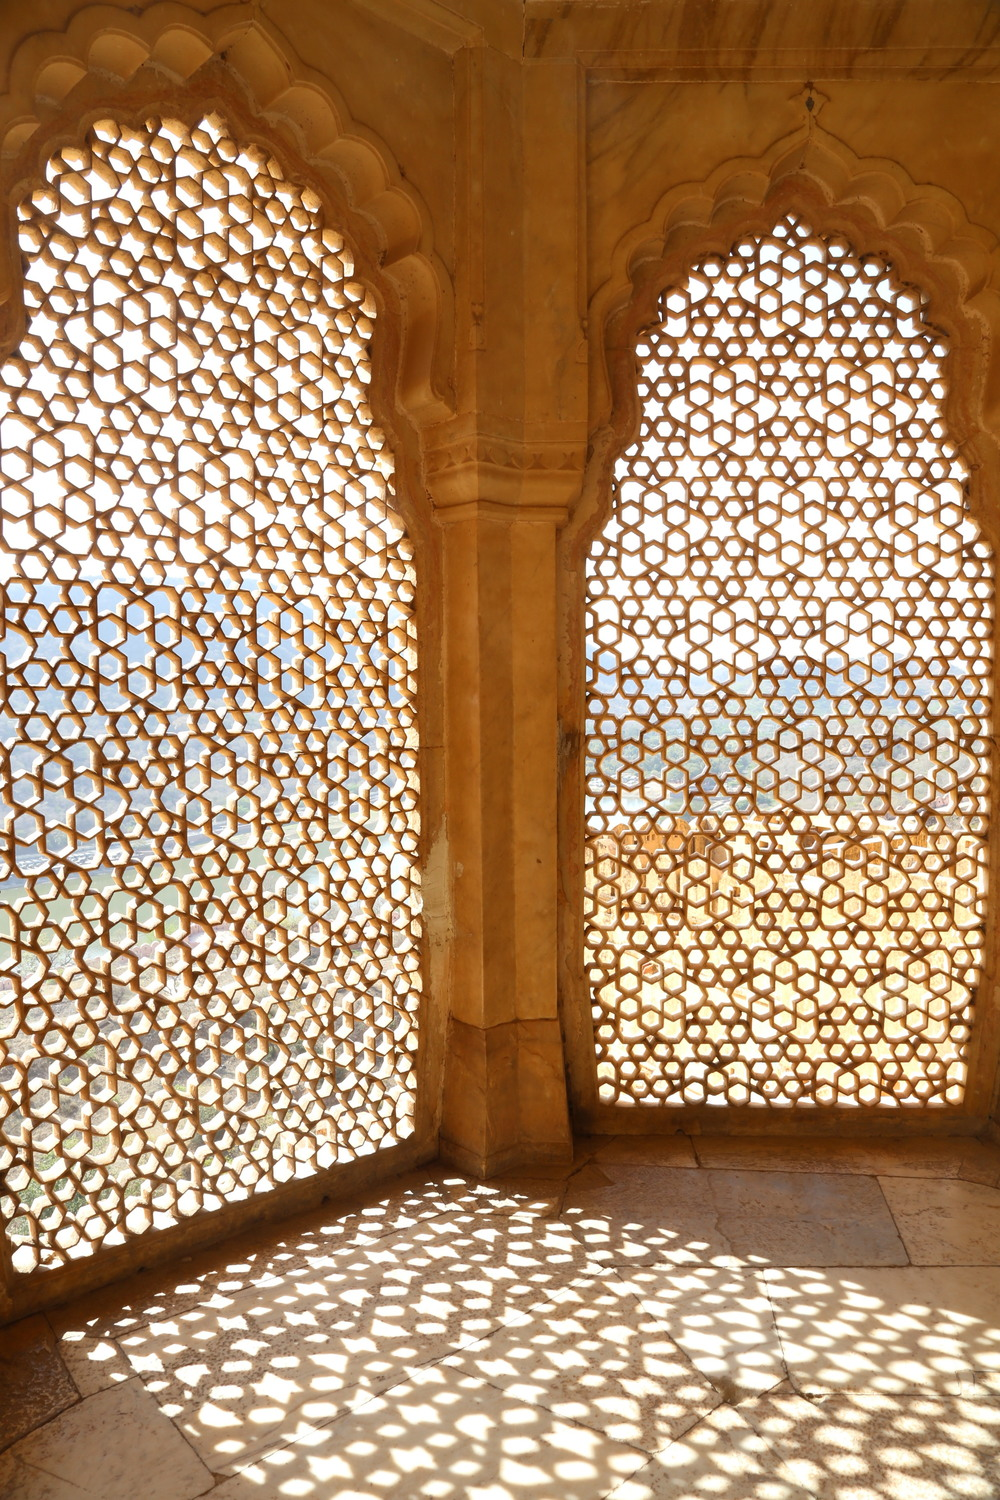 Shadow windows - Amer Fort